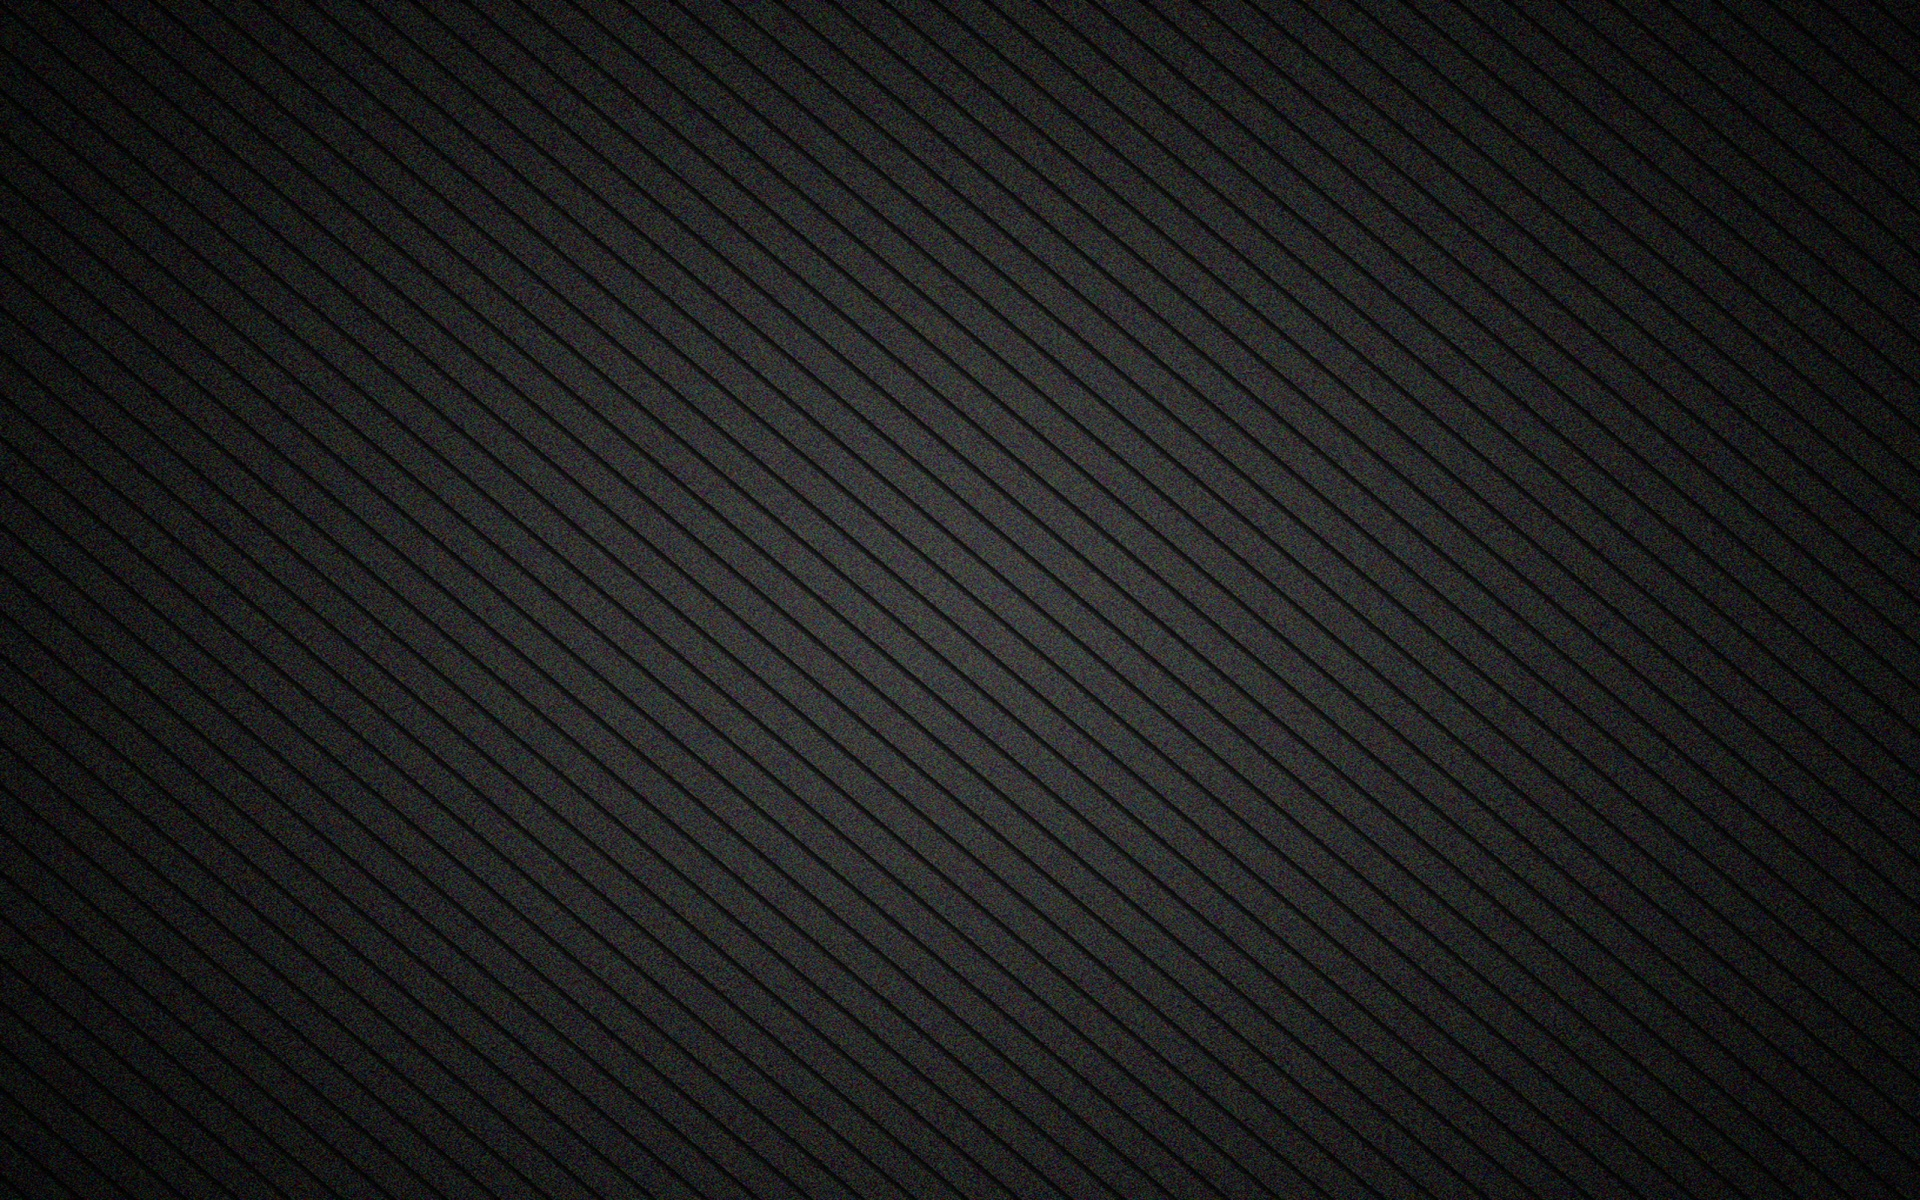 Black Wallpaper Image Android 1920x1200